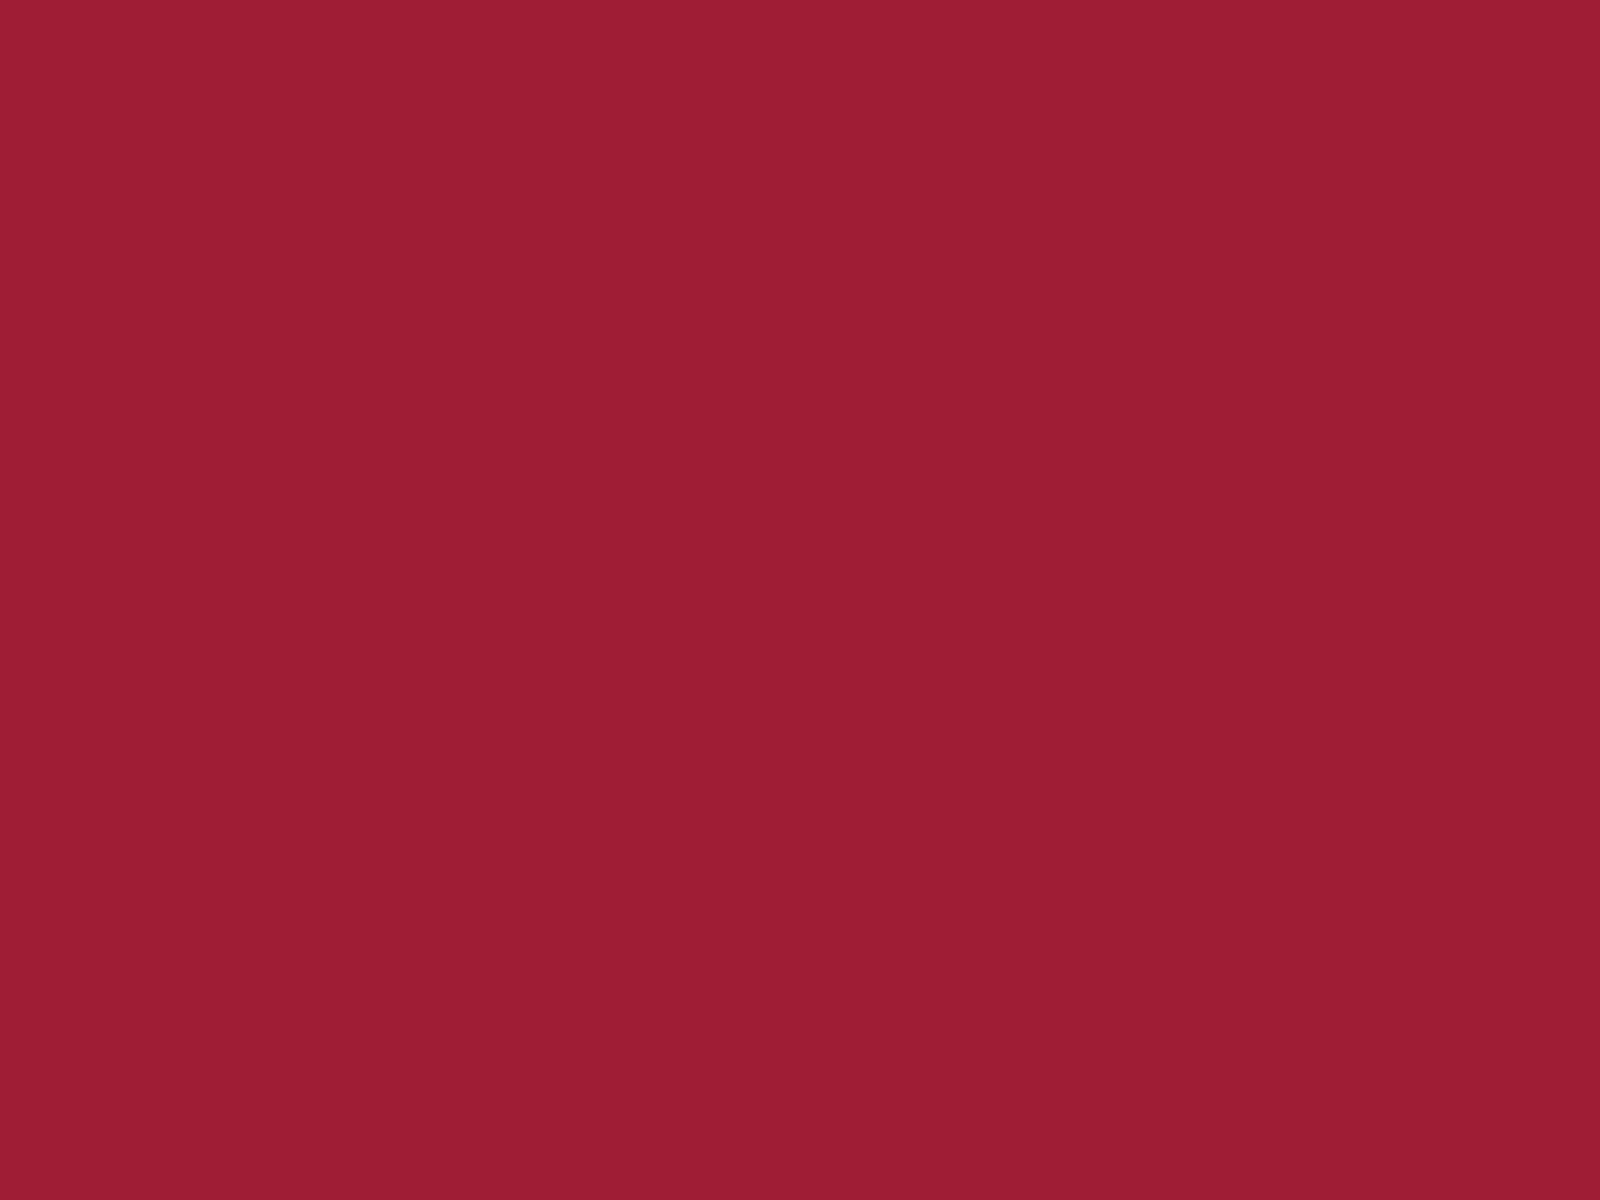 1600x1200 Vivid Burgundy Solid Color Background